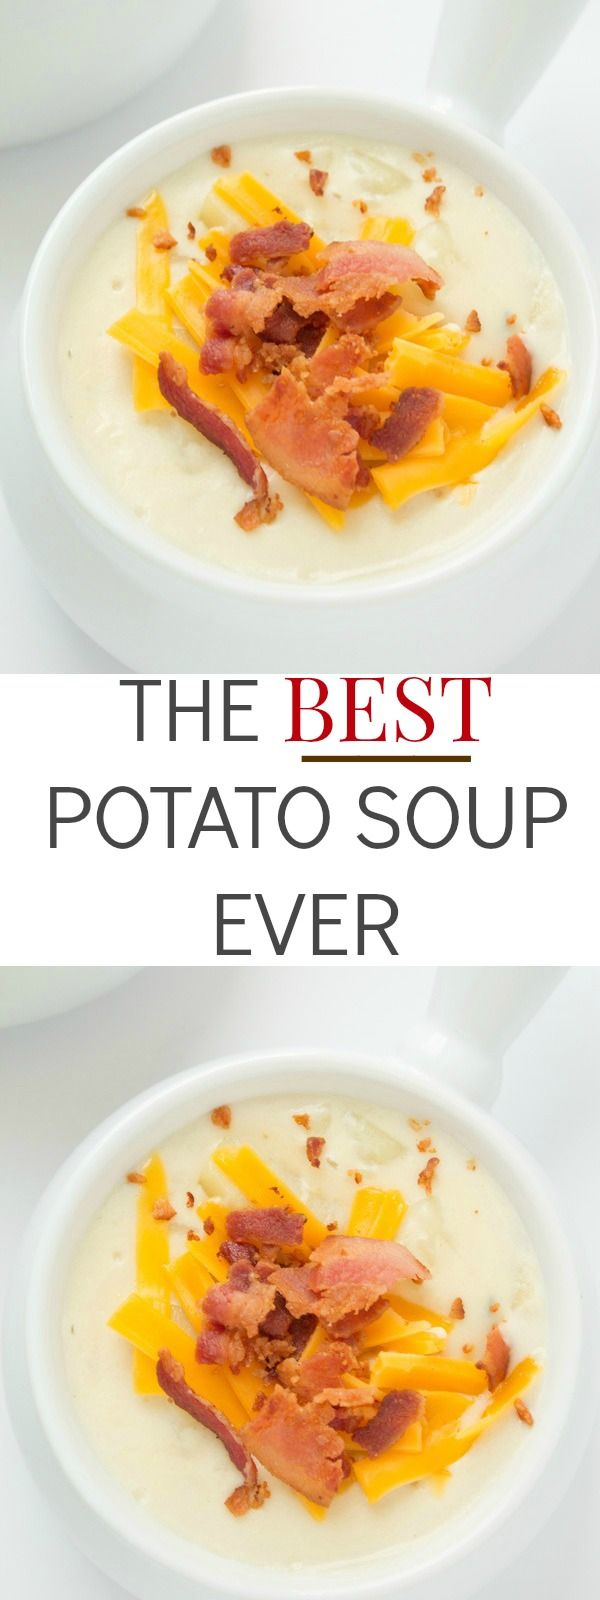 The really is the best potato soup ever recipe! You can have dinner ready and served in 20 minutes! A family-favorite.